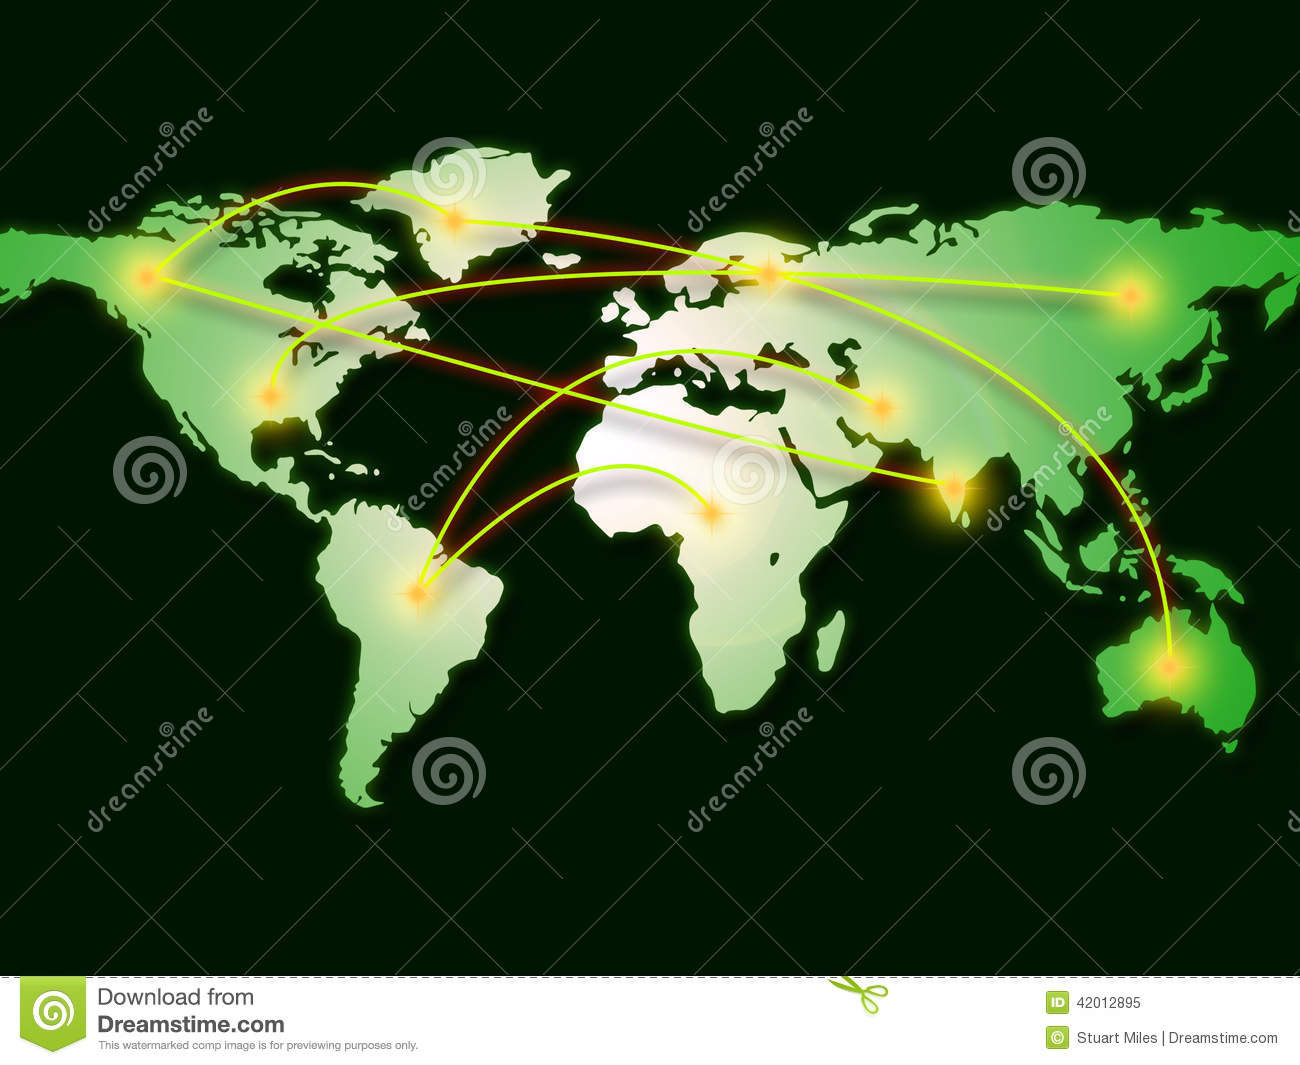 World map represents computer network and cartography stock royalty free illustration download world map represents computer network and cartography stock illustration gumiabroncs Choice Image